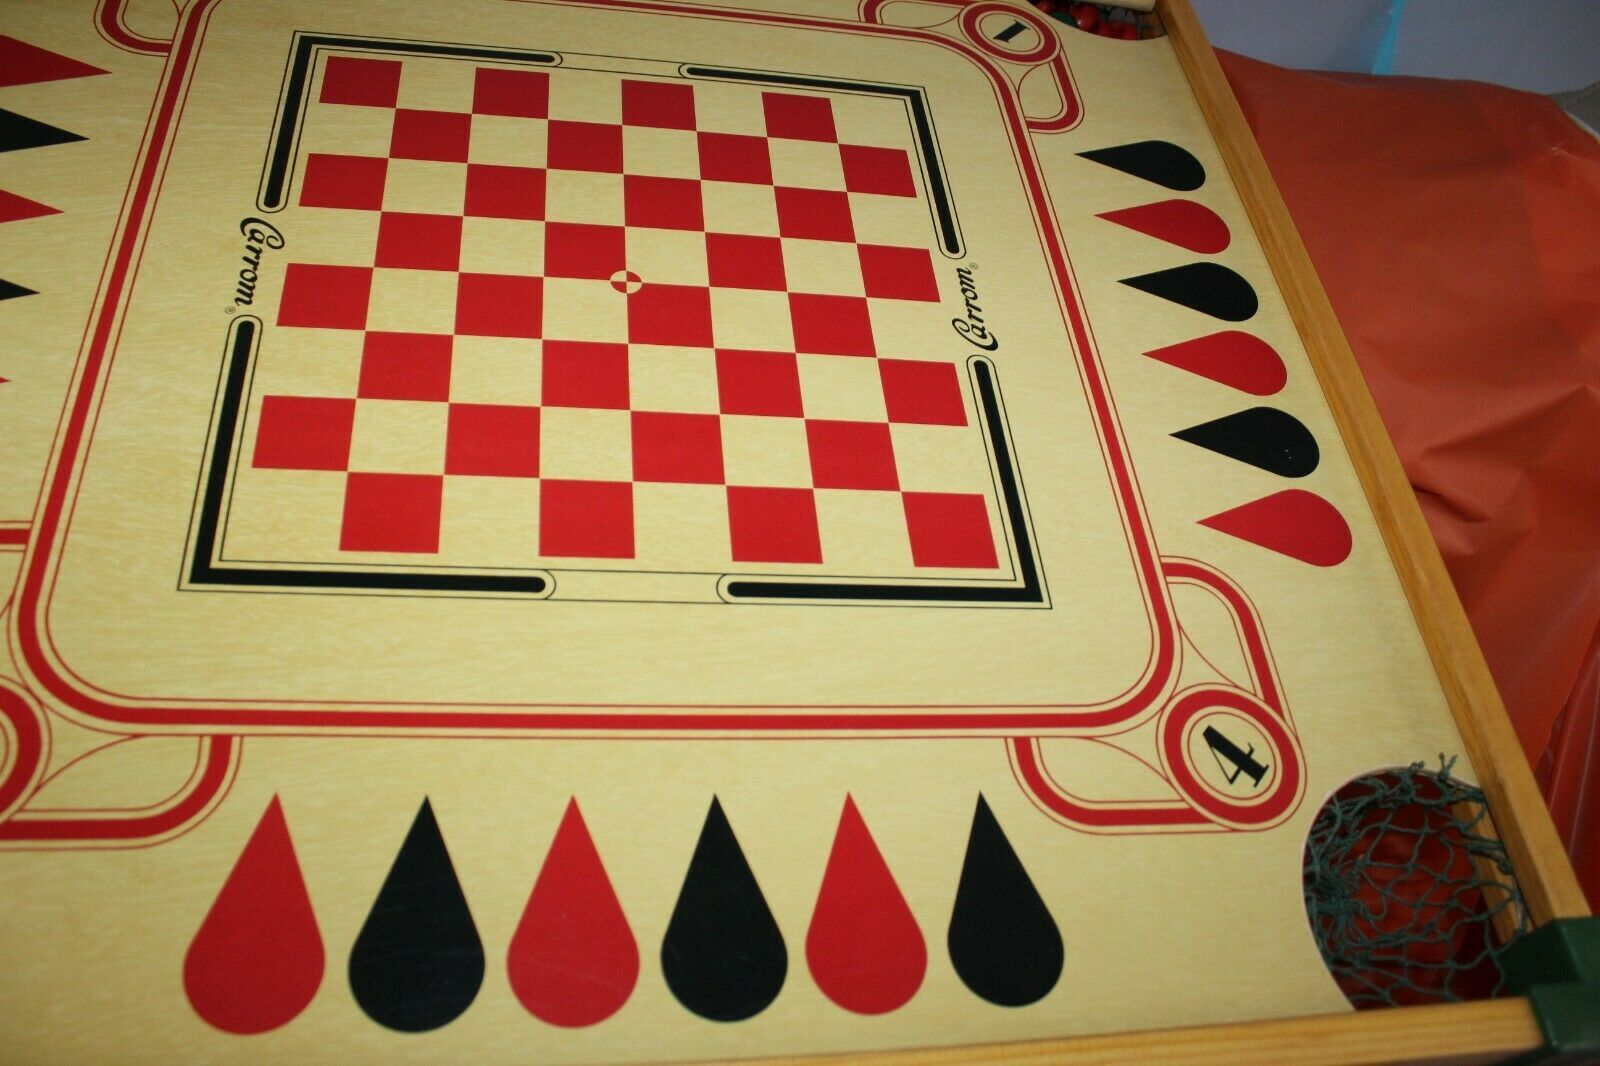 Carrom Gameboard With Cue Sticks Billiards Checkers Chess Backgammon And More